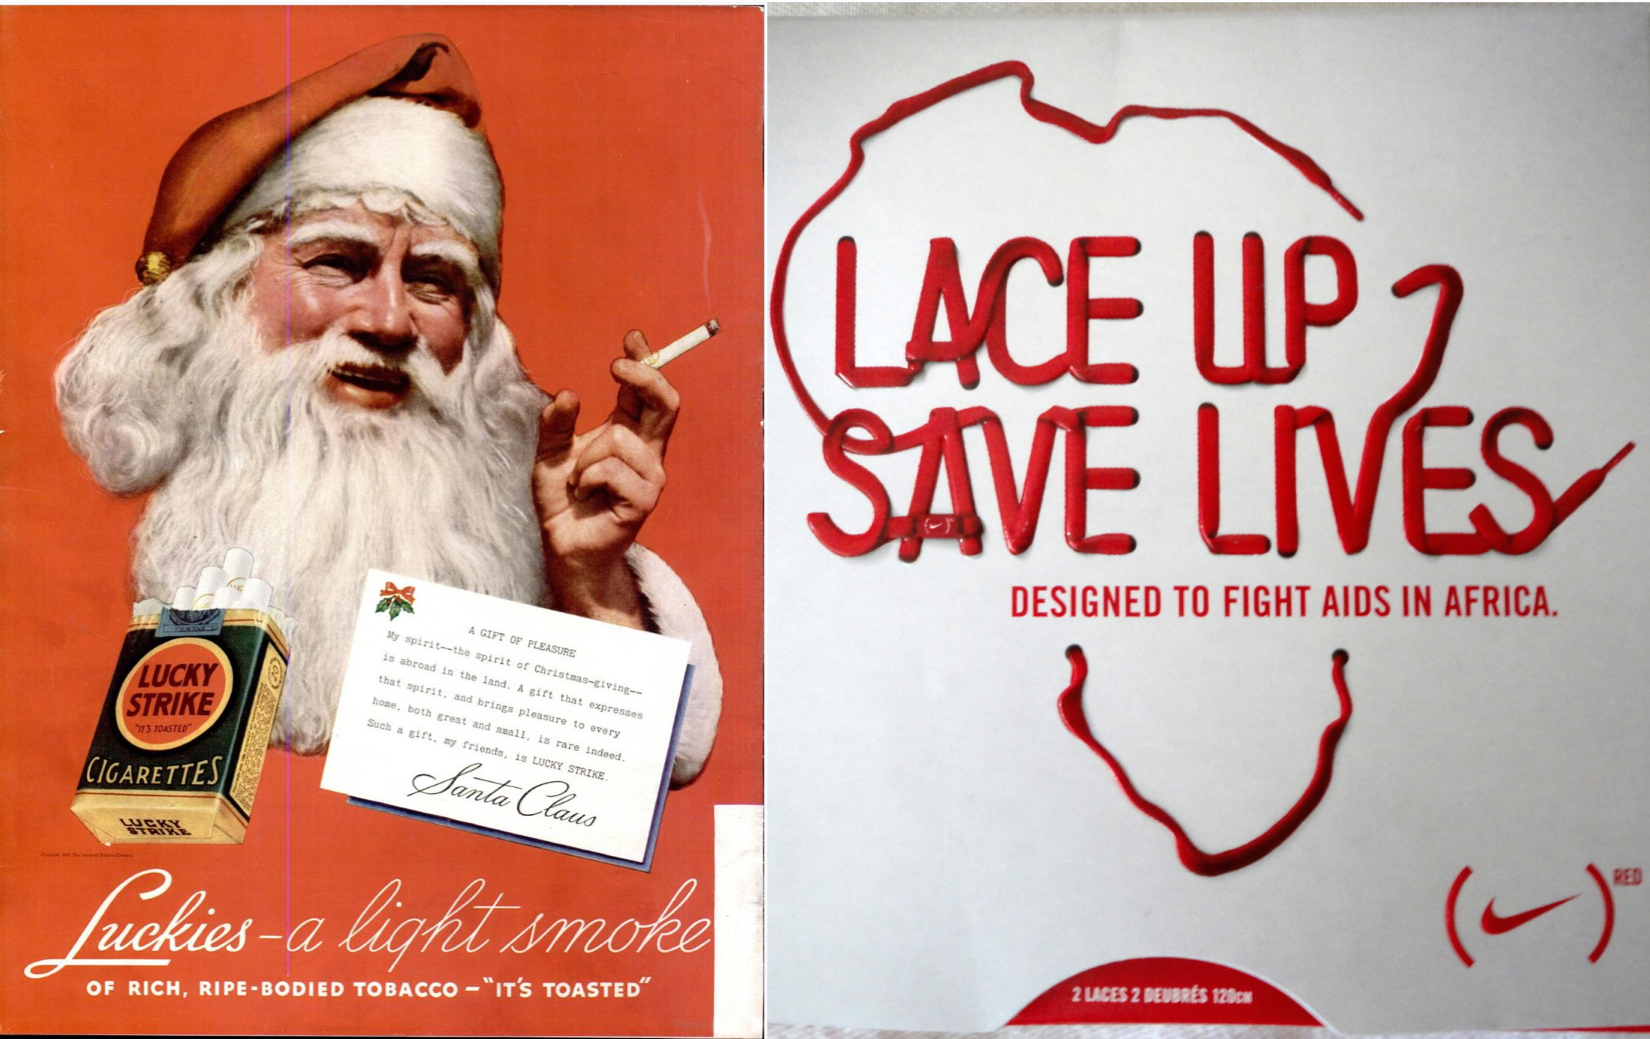 Left: A smiling Santa Claus smokes a cigarette. A card in front of him reads, A Gift of Pleasure: My spirit, the Spirit of Christmas-giving, is abroad in the land. A gift that expresses that spirit, and brings pleasure to every home, both great and small, is rare indeed. Such a gift, my friends, is LUCKY STRIKE. Santa Claus. Below Santa are the words Luckies, a light smoke of rich, ripe-bodied tobacco. It's toasted. Right: Some bright red shoelaces are laced through a white background to form a loose silhouette of Africa and the words Lace up Save lives. A caption reads Designed to fight AIDS in Africa. The Nike logo with the superscript RED is in the bottom corner.